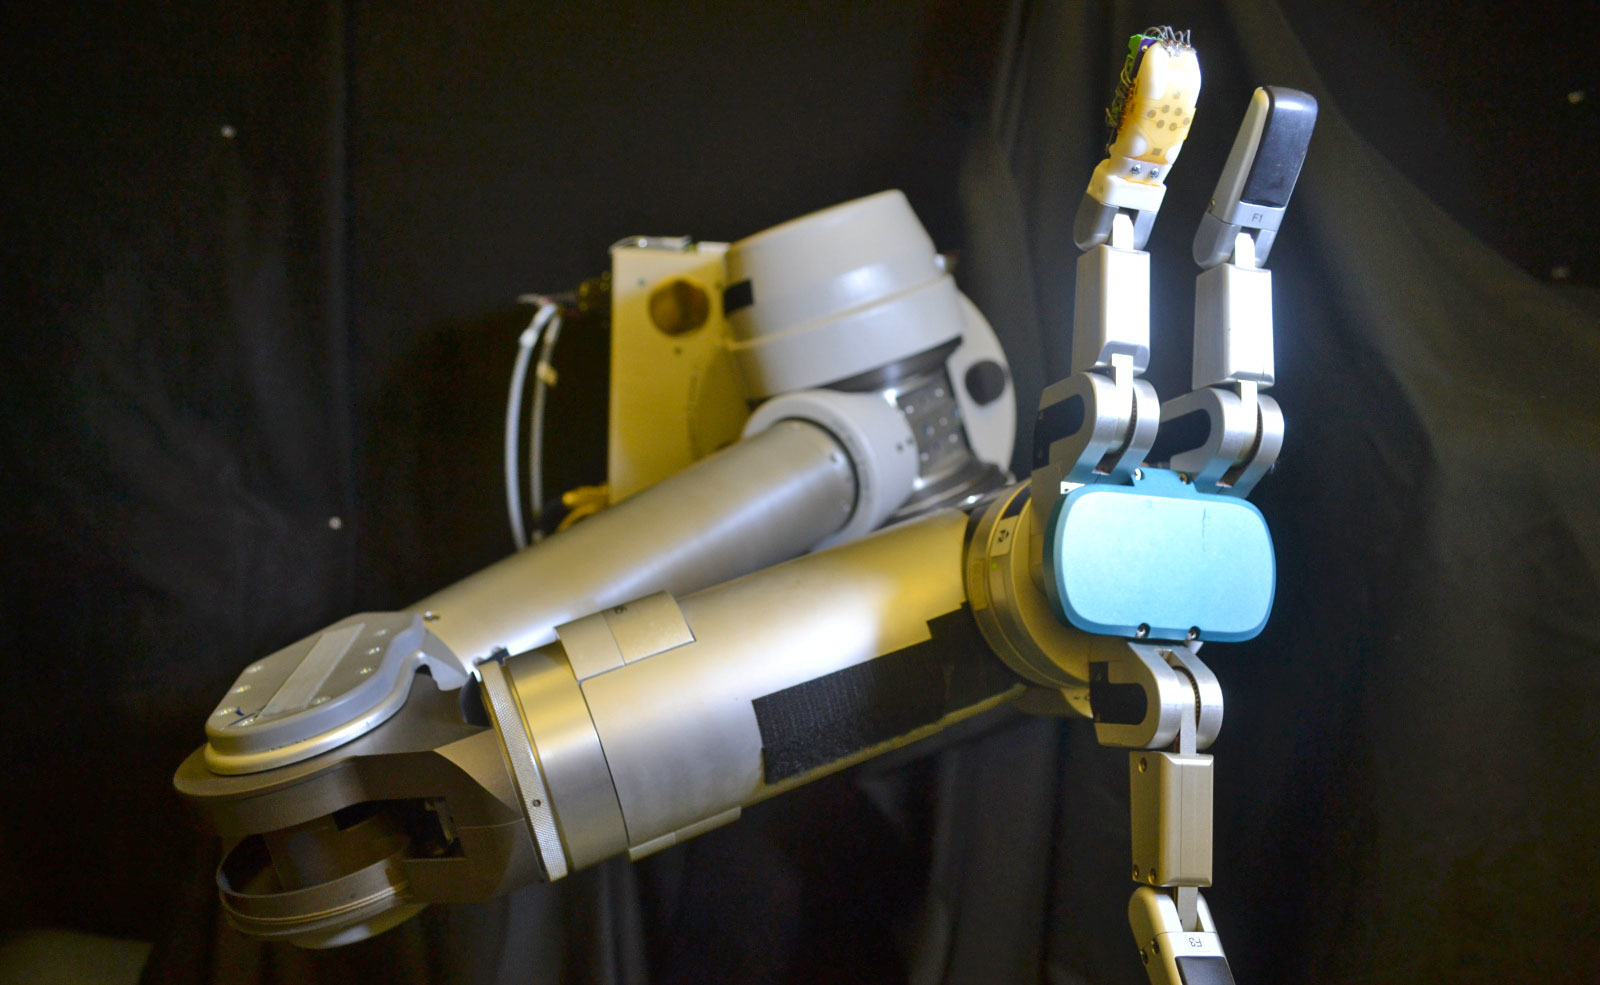 Stretchable artificial skin gives robots a human-like sense of touch